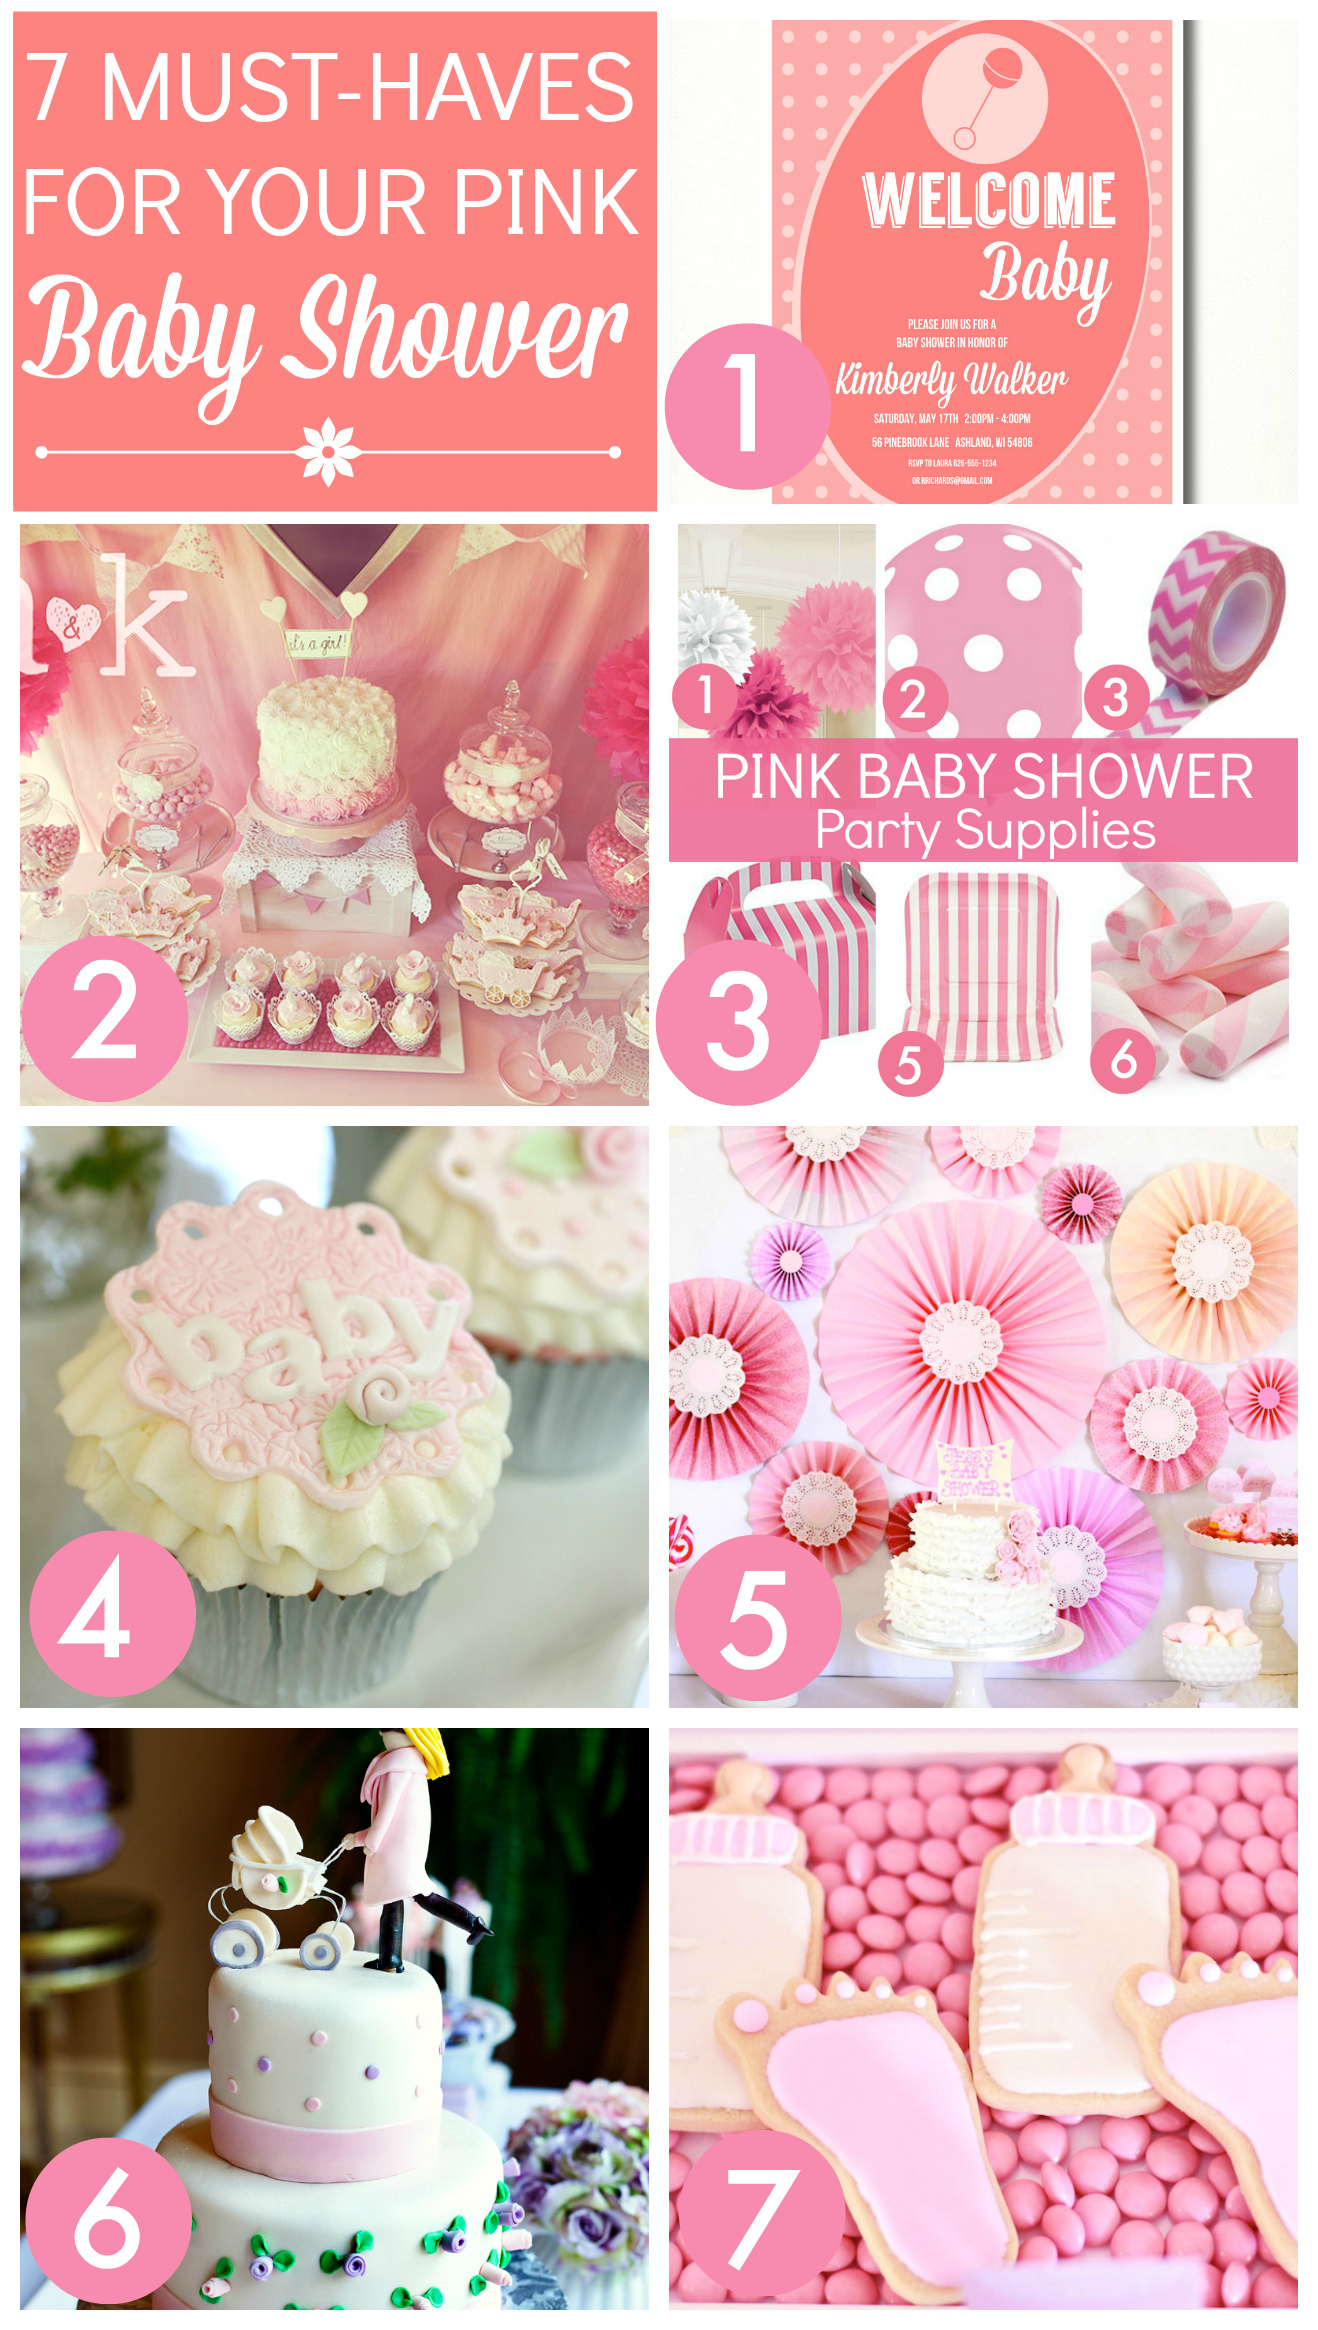 pink baby shower is such a classic way to celebrate a new baby girl